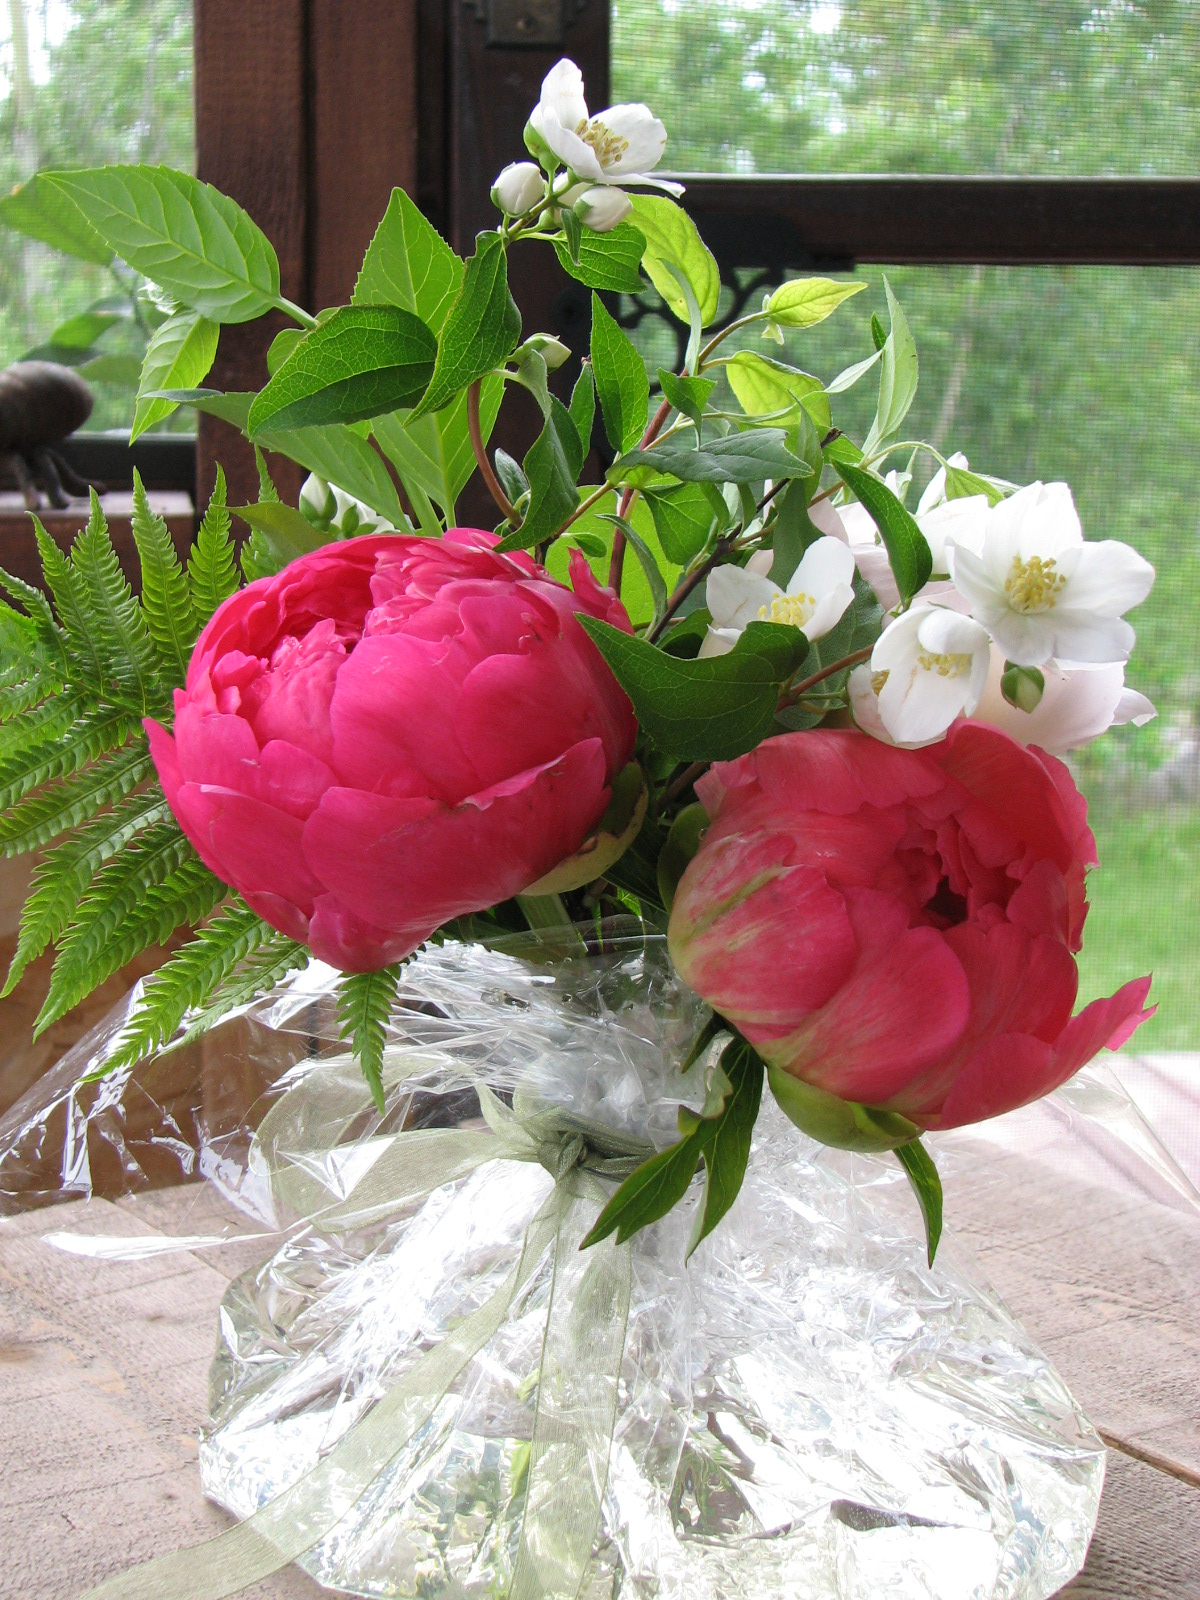 Cutting and Storing Peony Blossoms     Boreal farms Peonies make excellent cut flowers and you can create your own beautiful  bouquets with only a few blossoms  the flowers are so large they create a  big